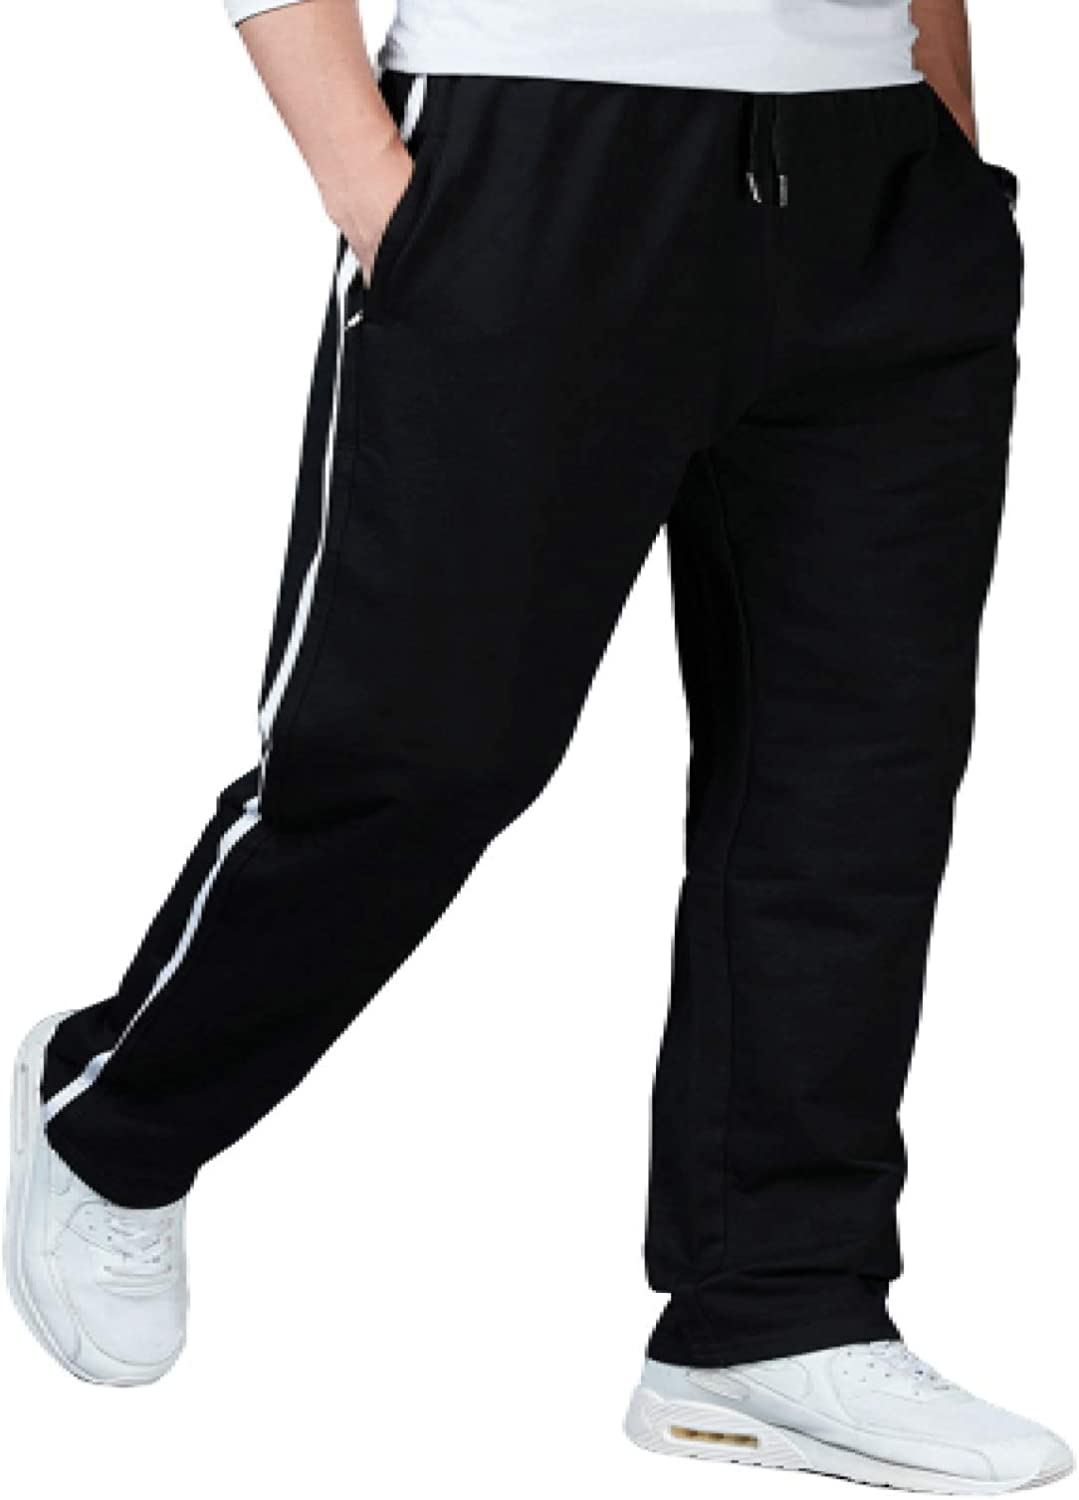 Attention brand Mens Sweatpants Casual Trousers Loose Wide S Spring new work one after another Big Side Legs Sizes